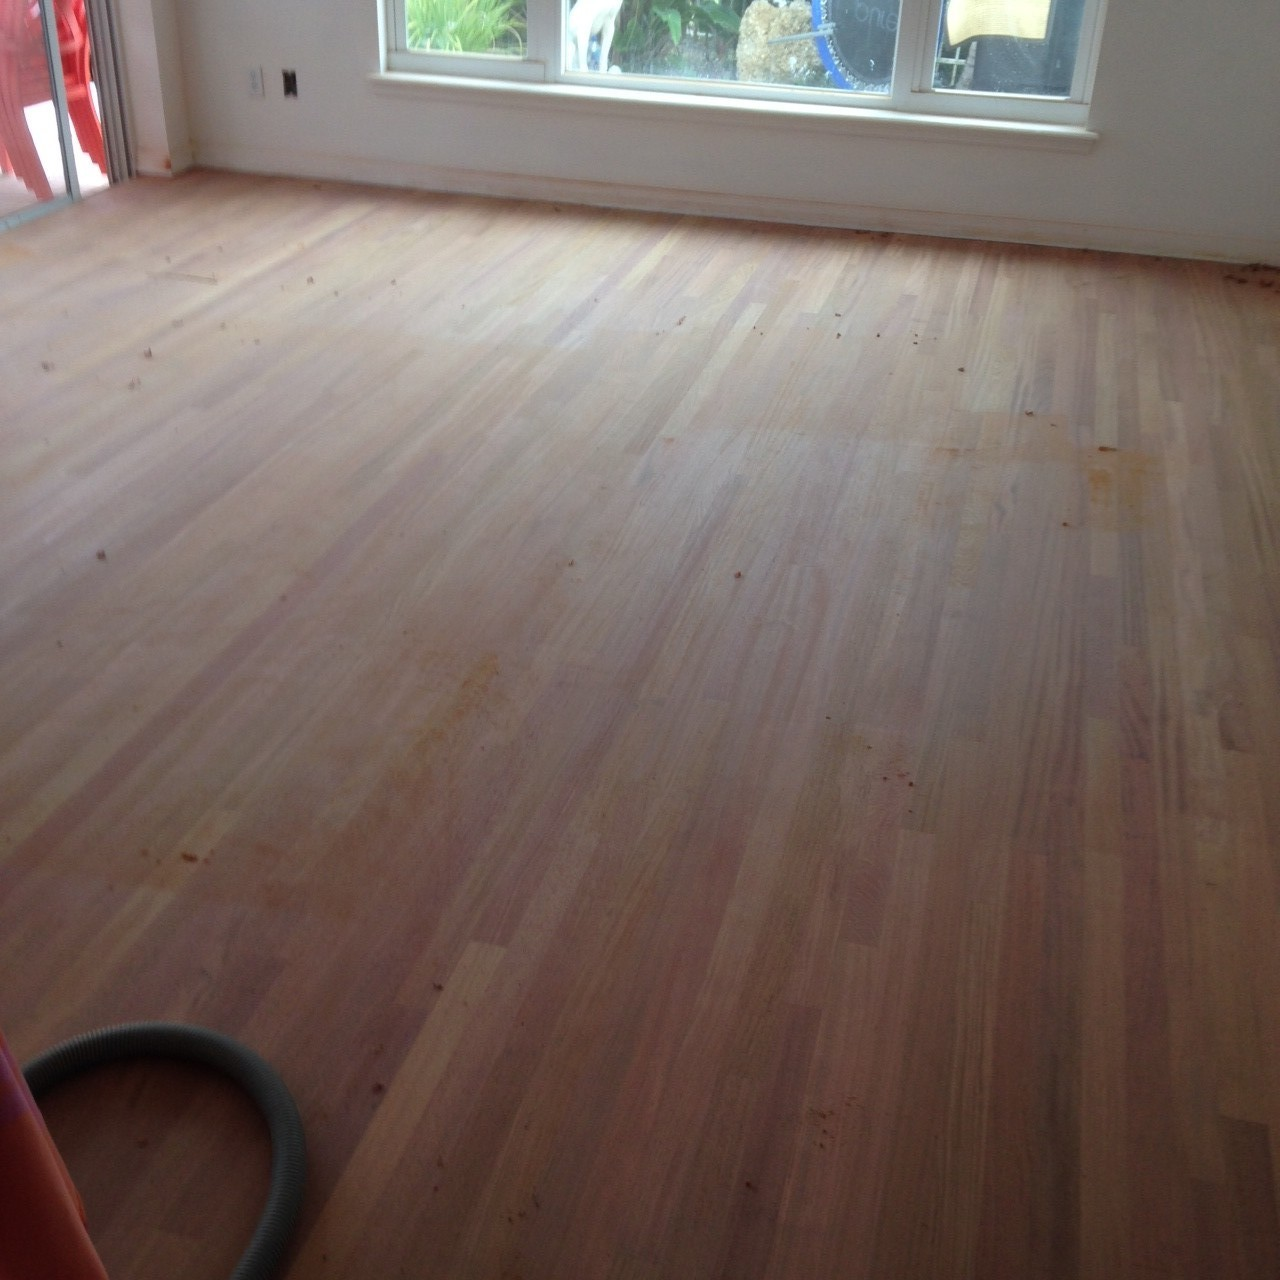 sanded brazilian cherry wood floor in home in st augustine florida